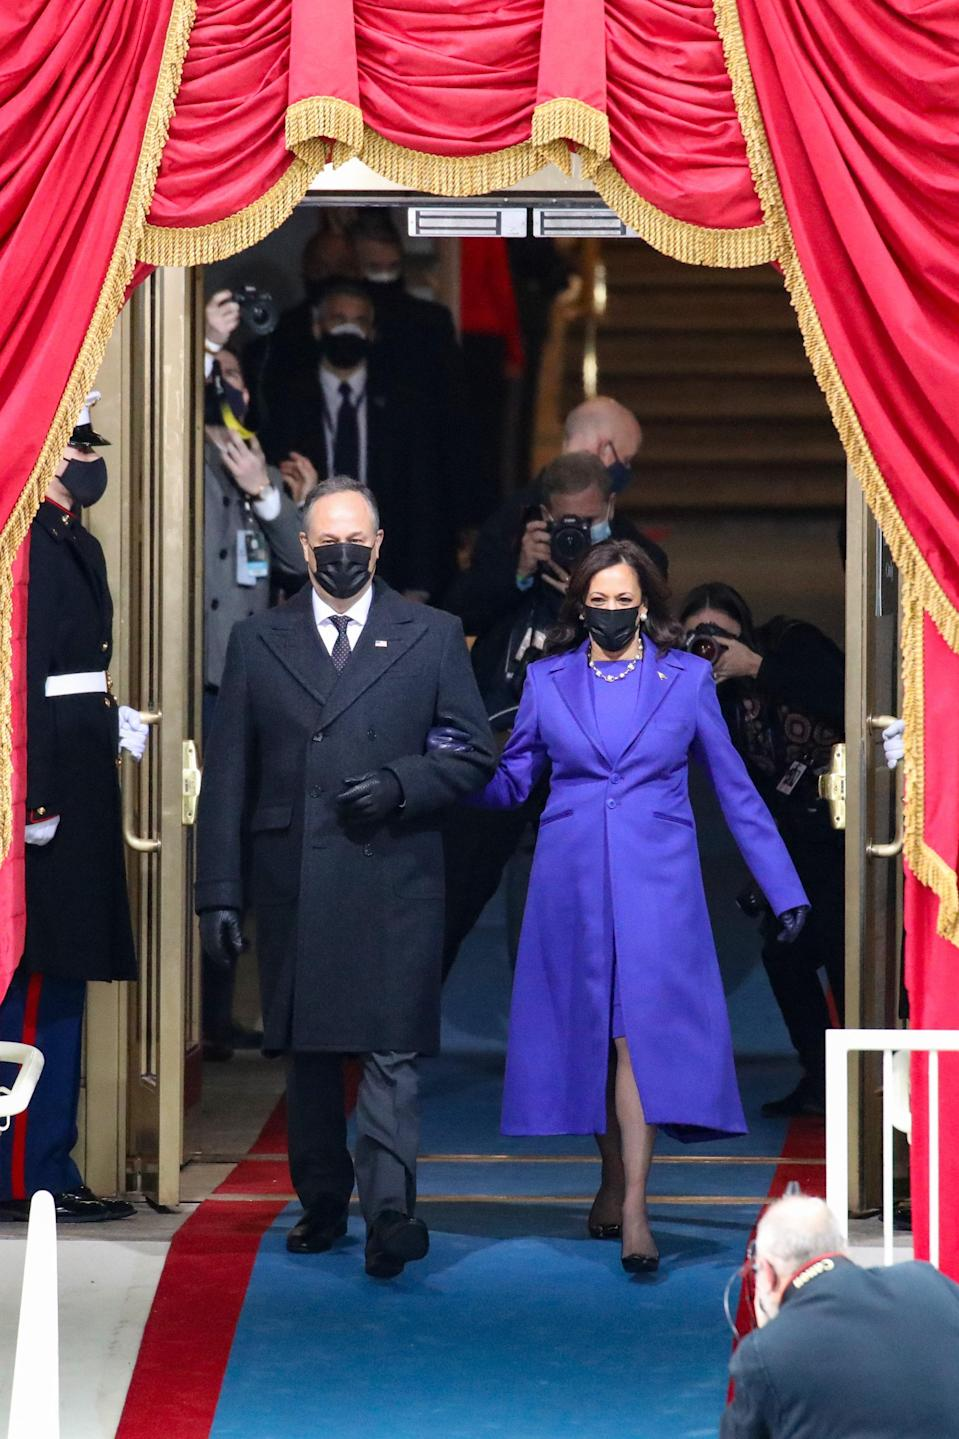 """<a href=""""https://www.teenvogue.com/story/kamala-harris-inauguration-outfit?mbid=synd_yahoo_rss"""" rel=""""nofollow noopener"""" target=""""_blank"""" data-ylk=""""slk:Vice President Kamala Harris in Christopher John Rogers"""" class=""""link rapid-noclick-resp"""">Vice President Kamala Harris in Christopher John Rogers</a>… need we say more? People throw around the """"match made in heaven"""" moniker way too often but in this case, it truly applies!"""